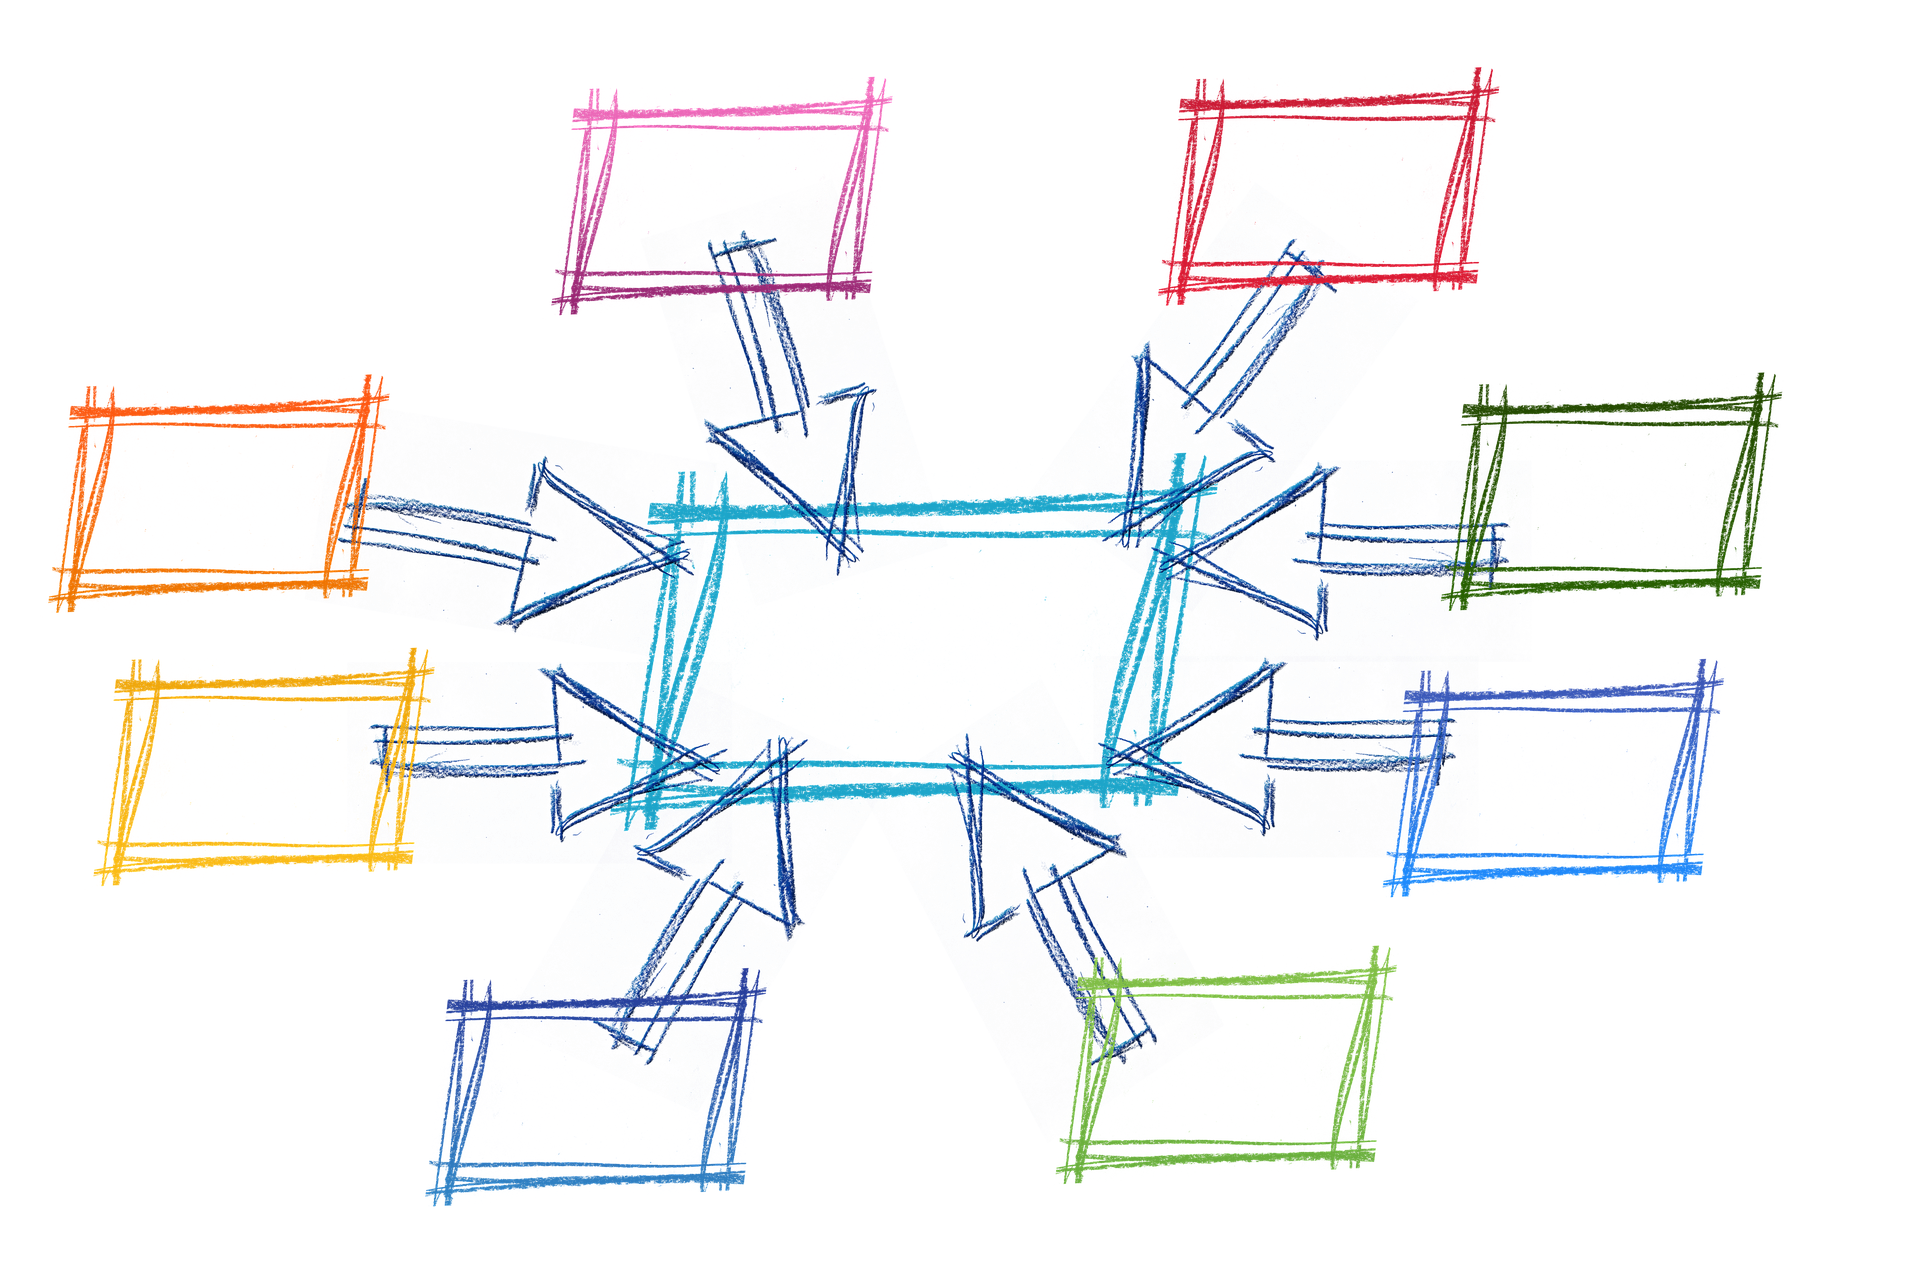 An image showing distribution from different boxes to one box of different colors